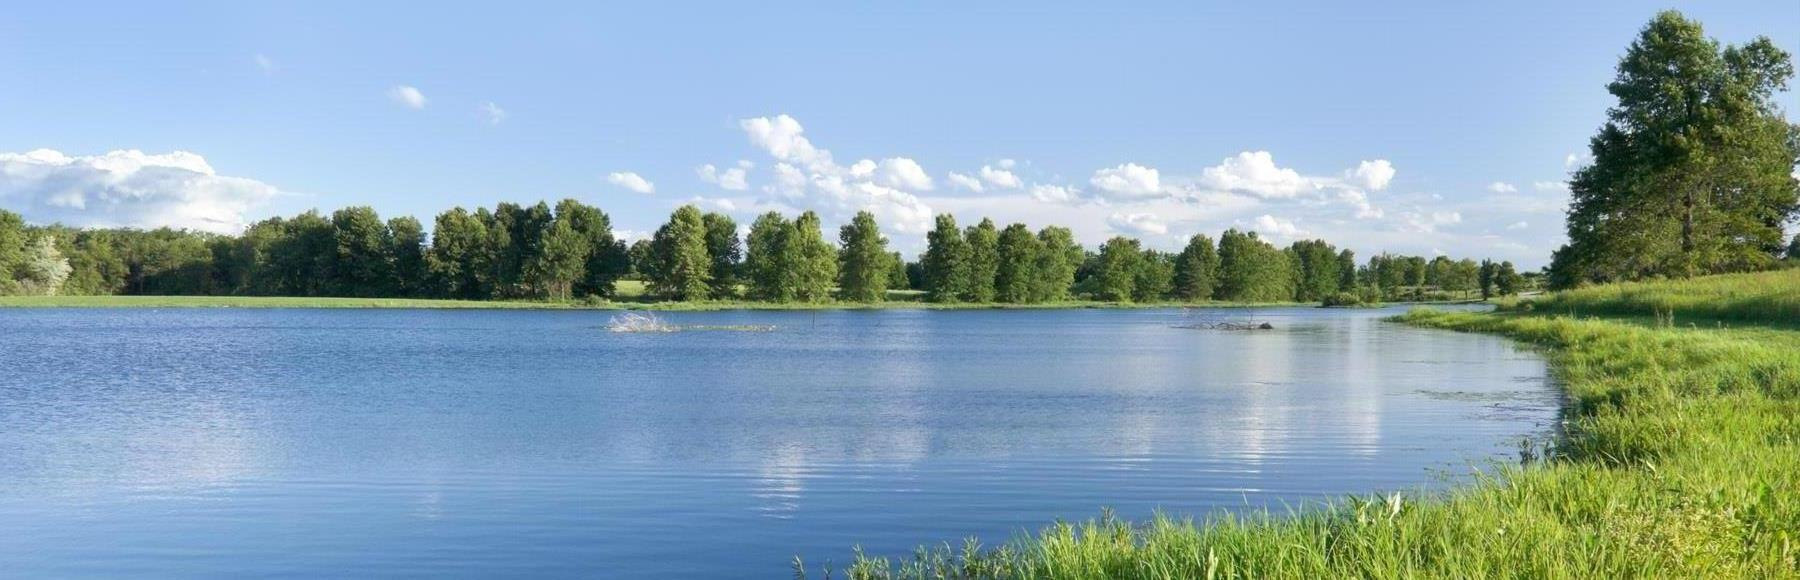 Landscape scene of a lake surrounded by trees